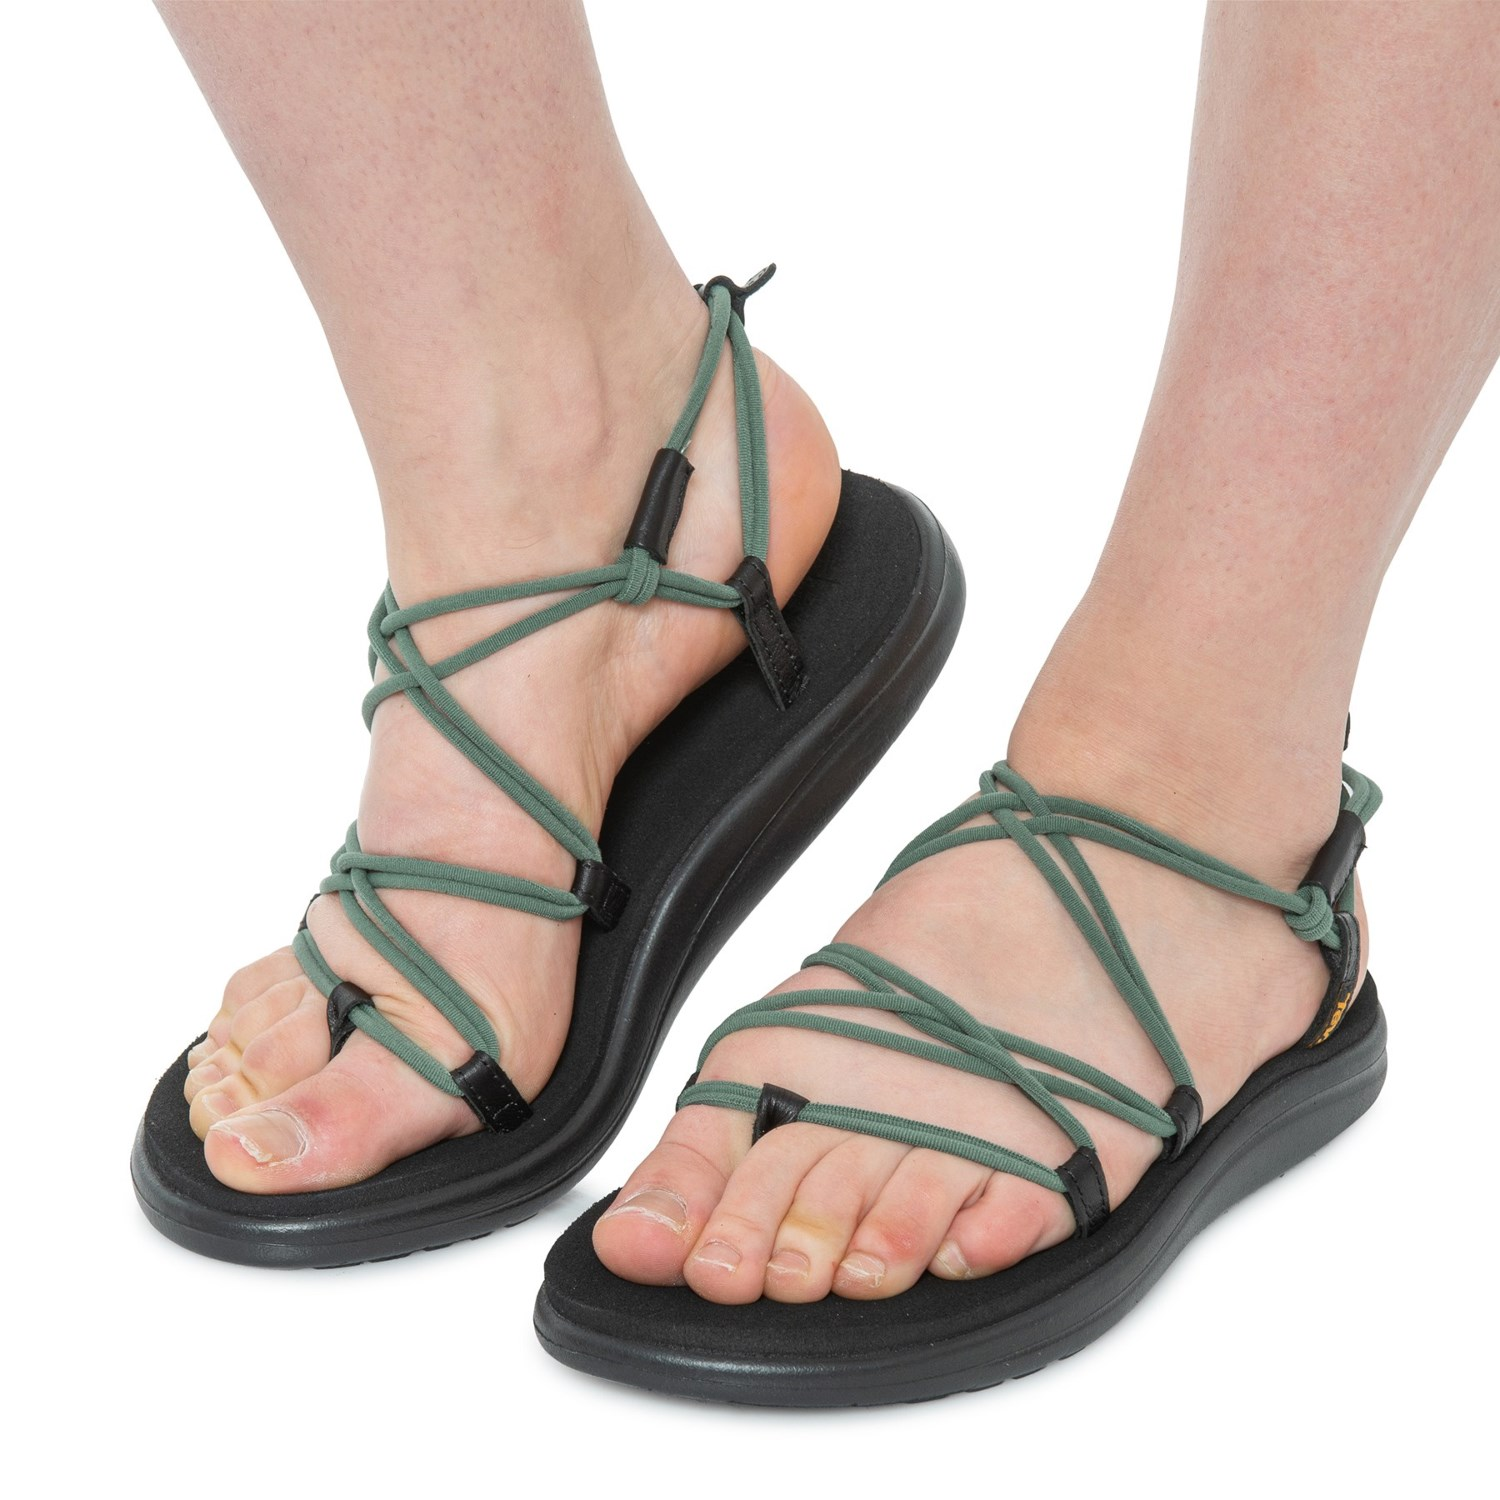 designer fashion authorized site speical offer Teva Voya Infinity Strappy Sandals (For Women) - Save 37%